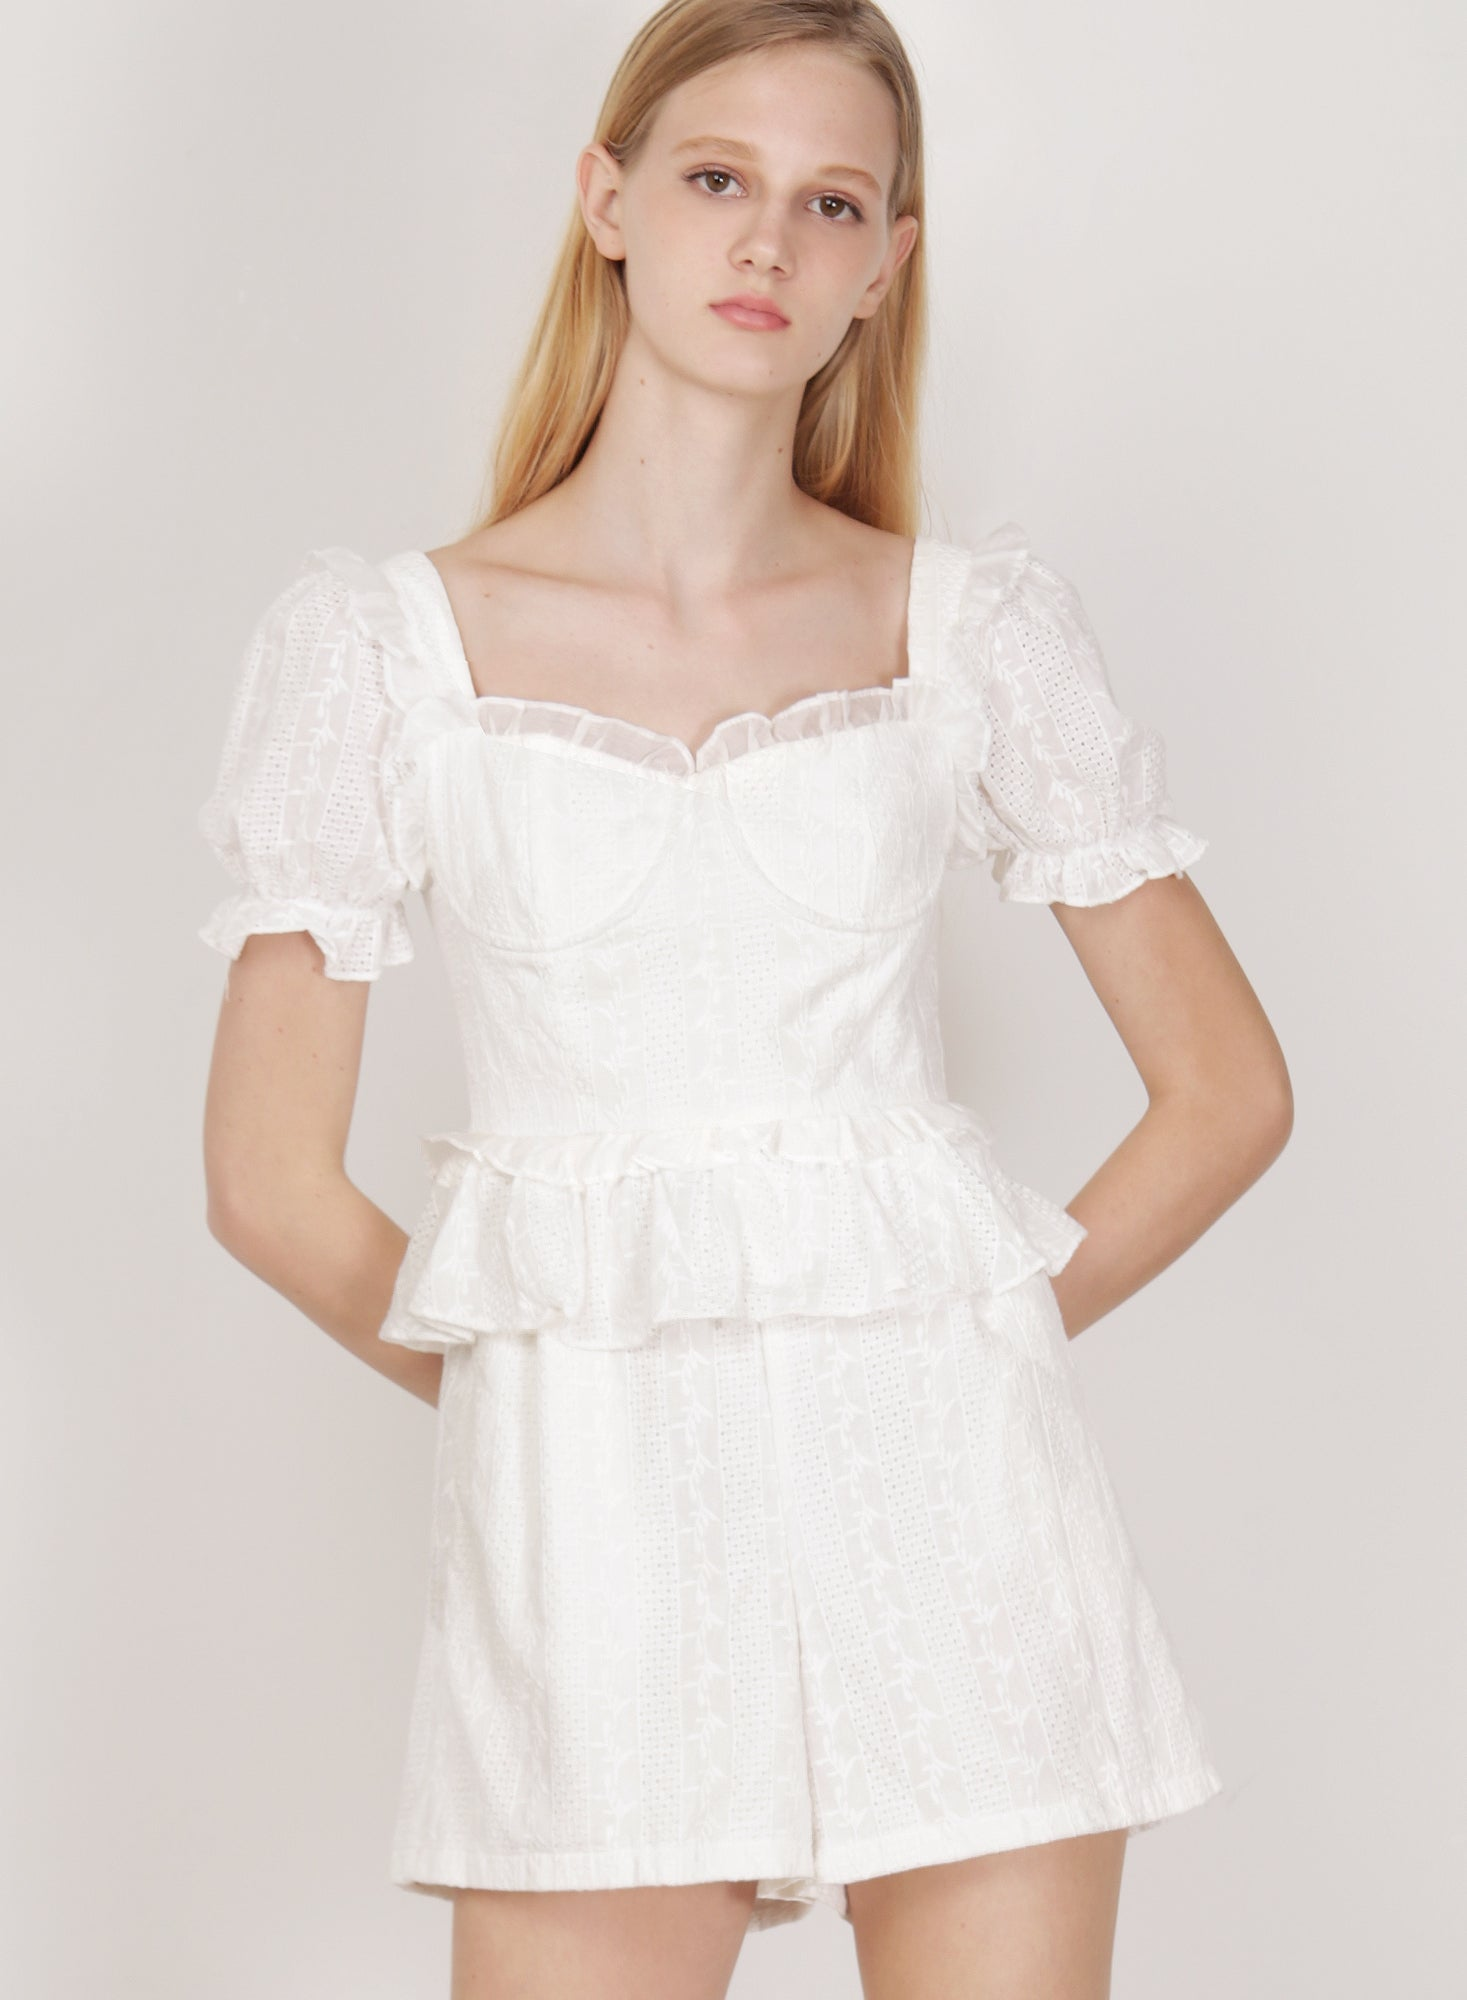 Runes Embroidered Cotton Romper (White)